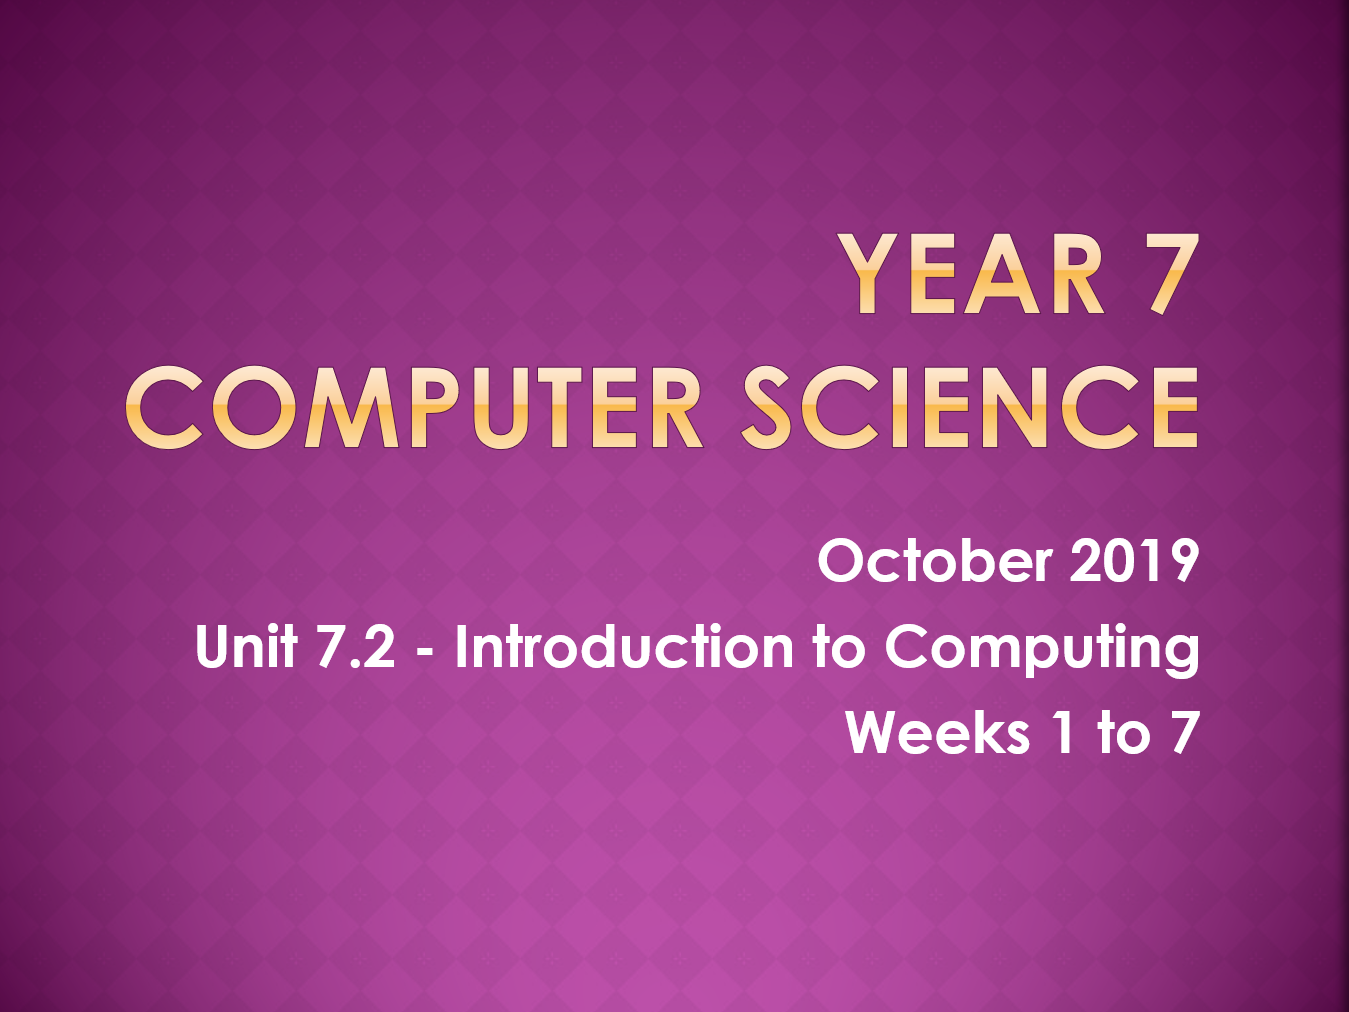 Complete Computer Science KS3 SOW: Introduction to Computing